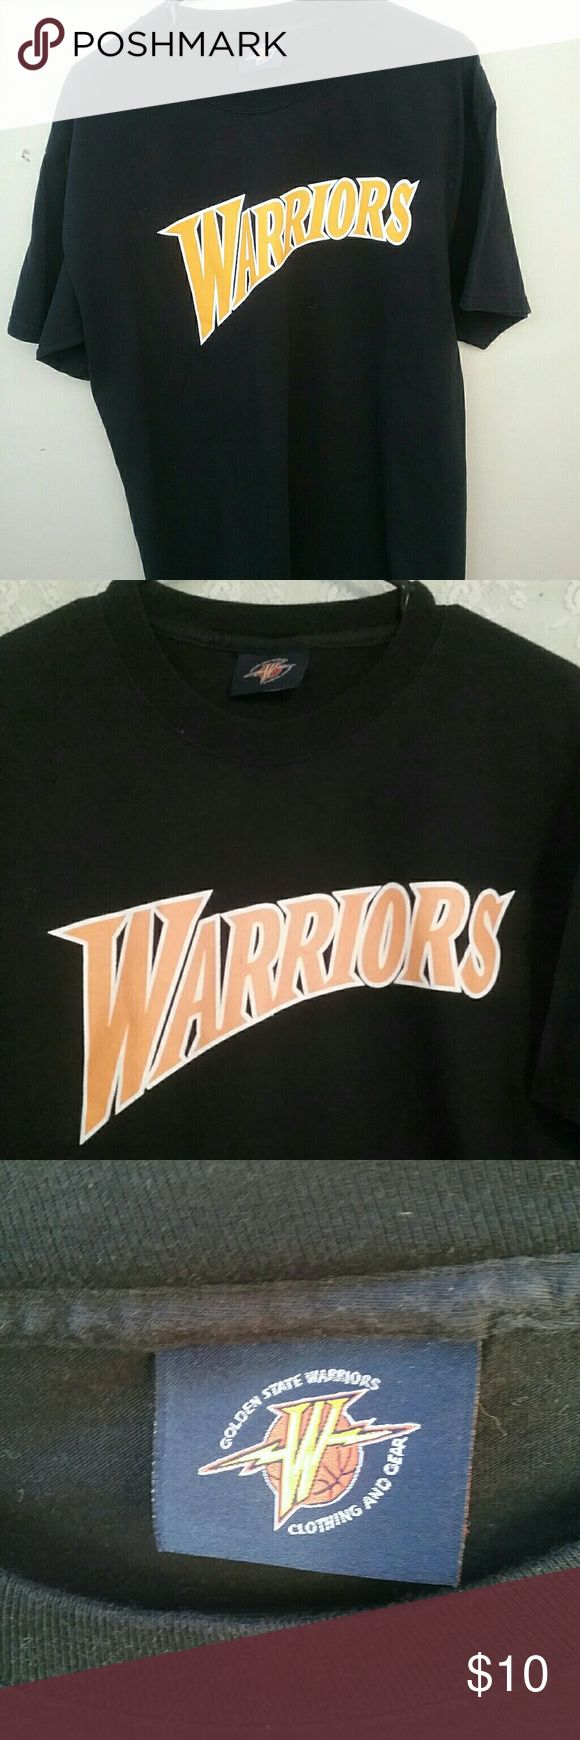 Warriors Tees 1 for $10  2 for $15 3 for $20 Tees.,lp, Shirts Tees - Short Sleeve